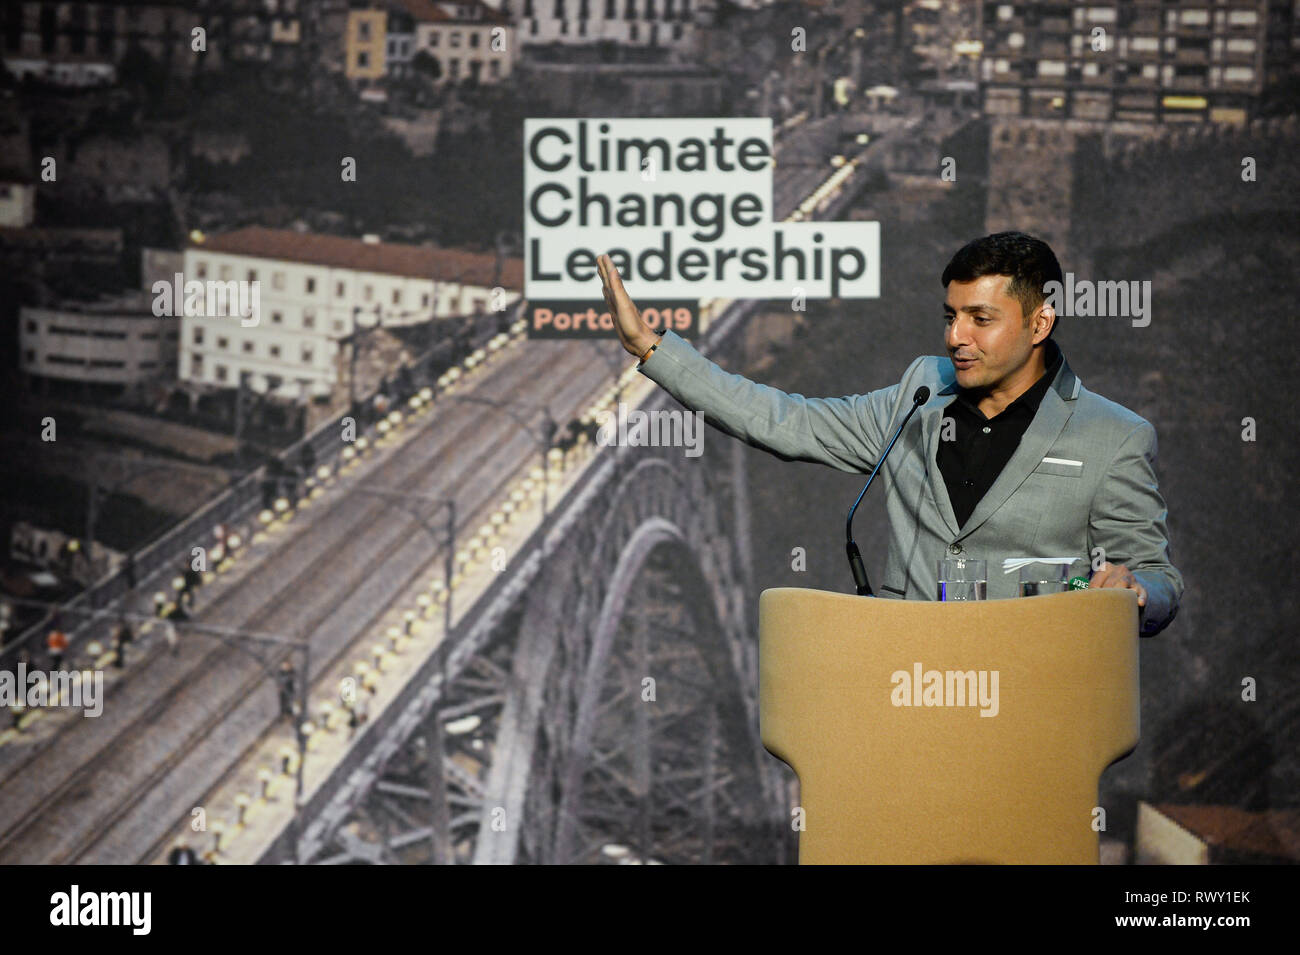 Porto, Portugal. 7th Mar, 2019. Afroz Shah, Indian Activist seen speaking during the Climate Change Porto Summit at Alfandega Congress Center. Credit: Omar Marques/SOPA Images/ZUMA Wire/Alamy Live News - Stock Image